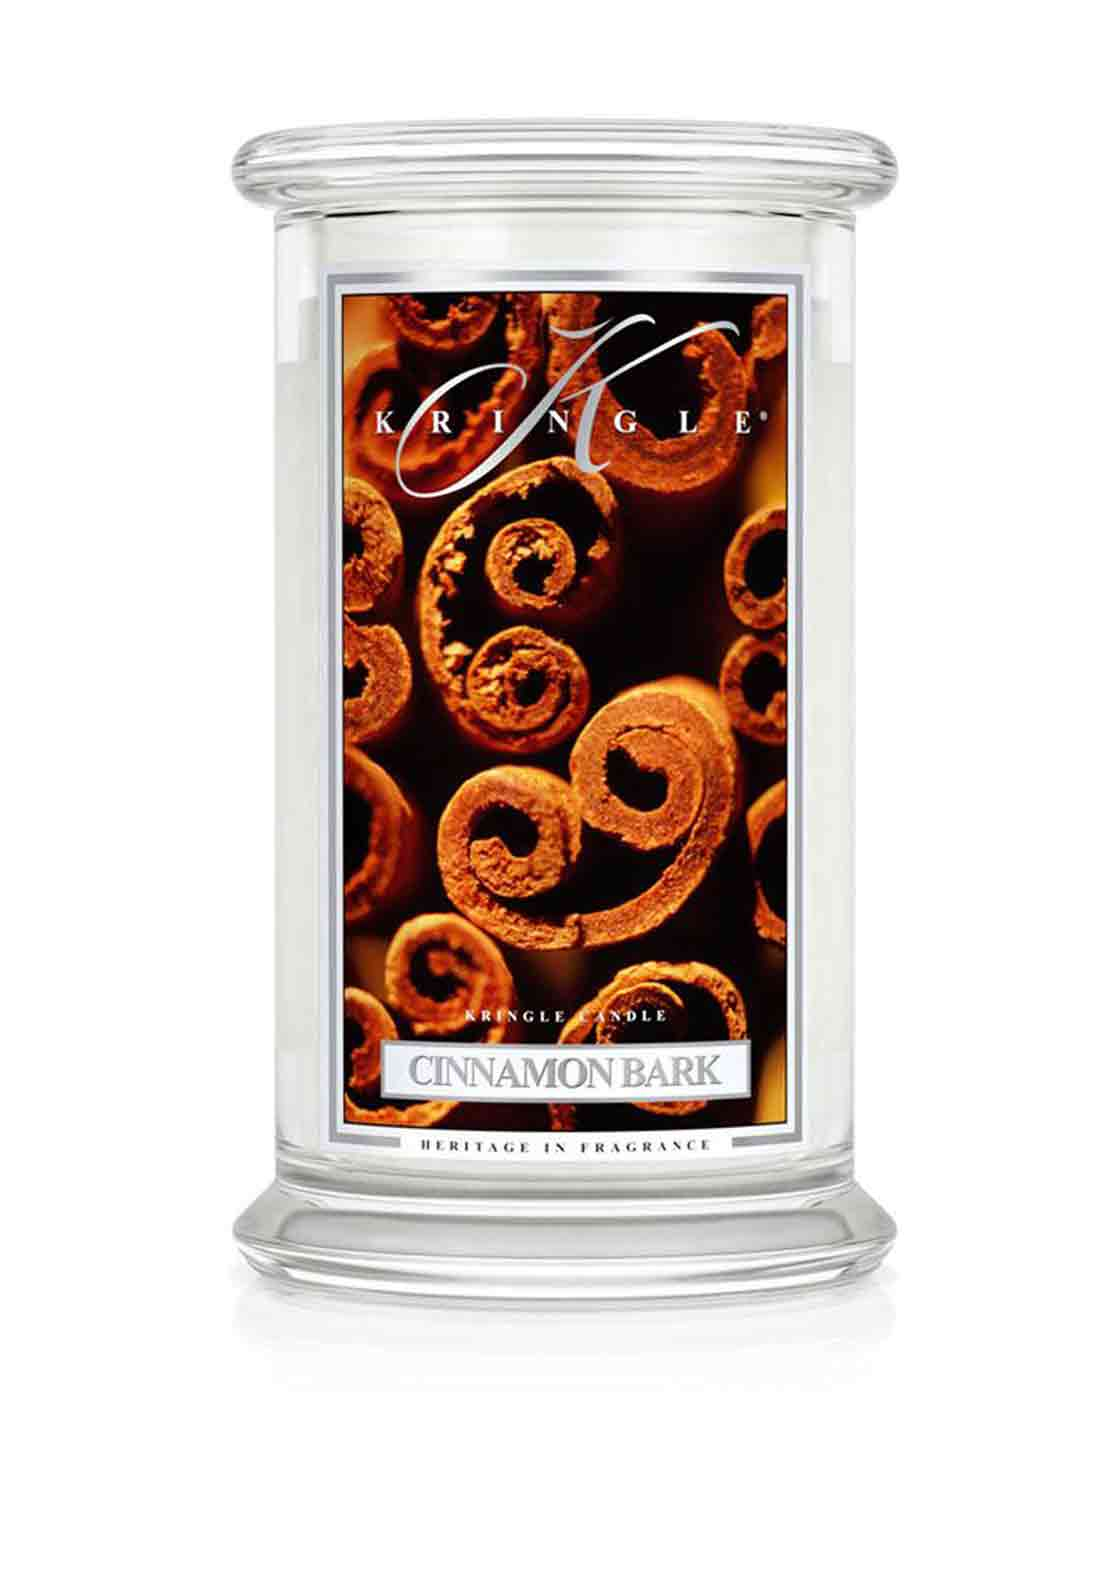 Kringle Candle Cinnamon Bark Large Two Wick Scented Candle Jar